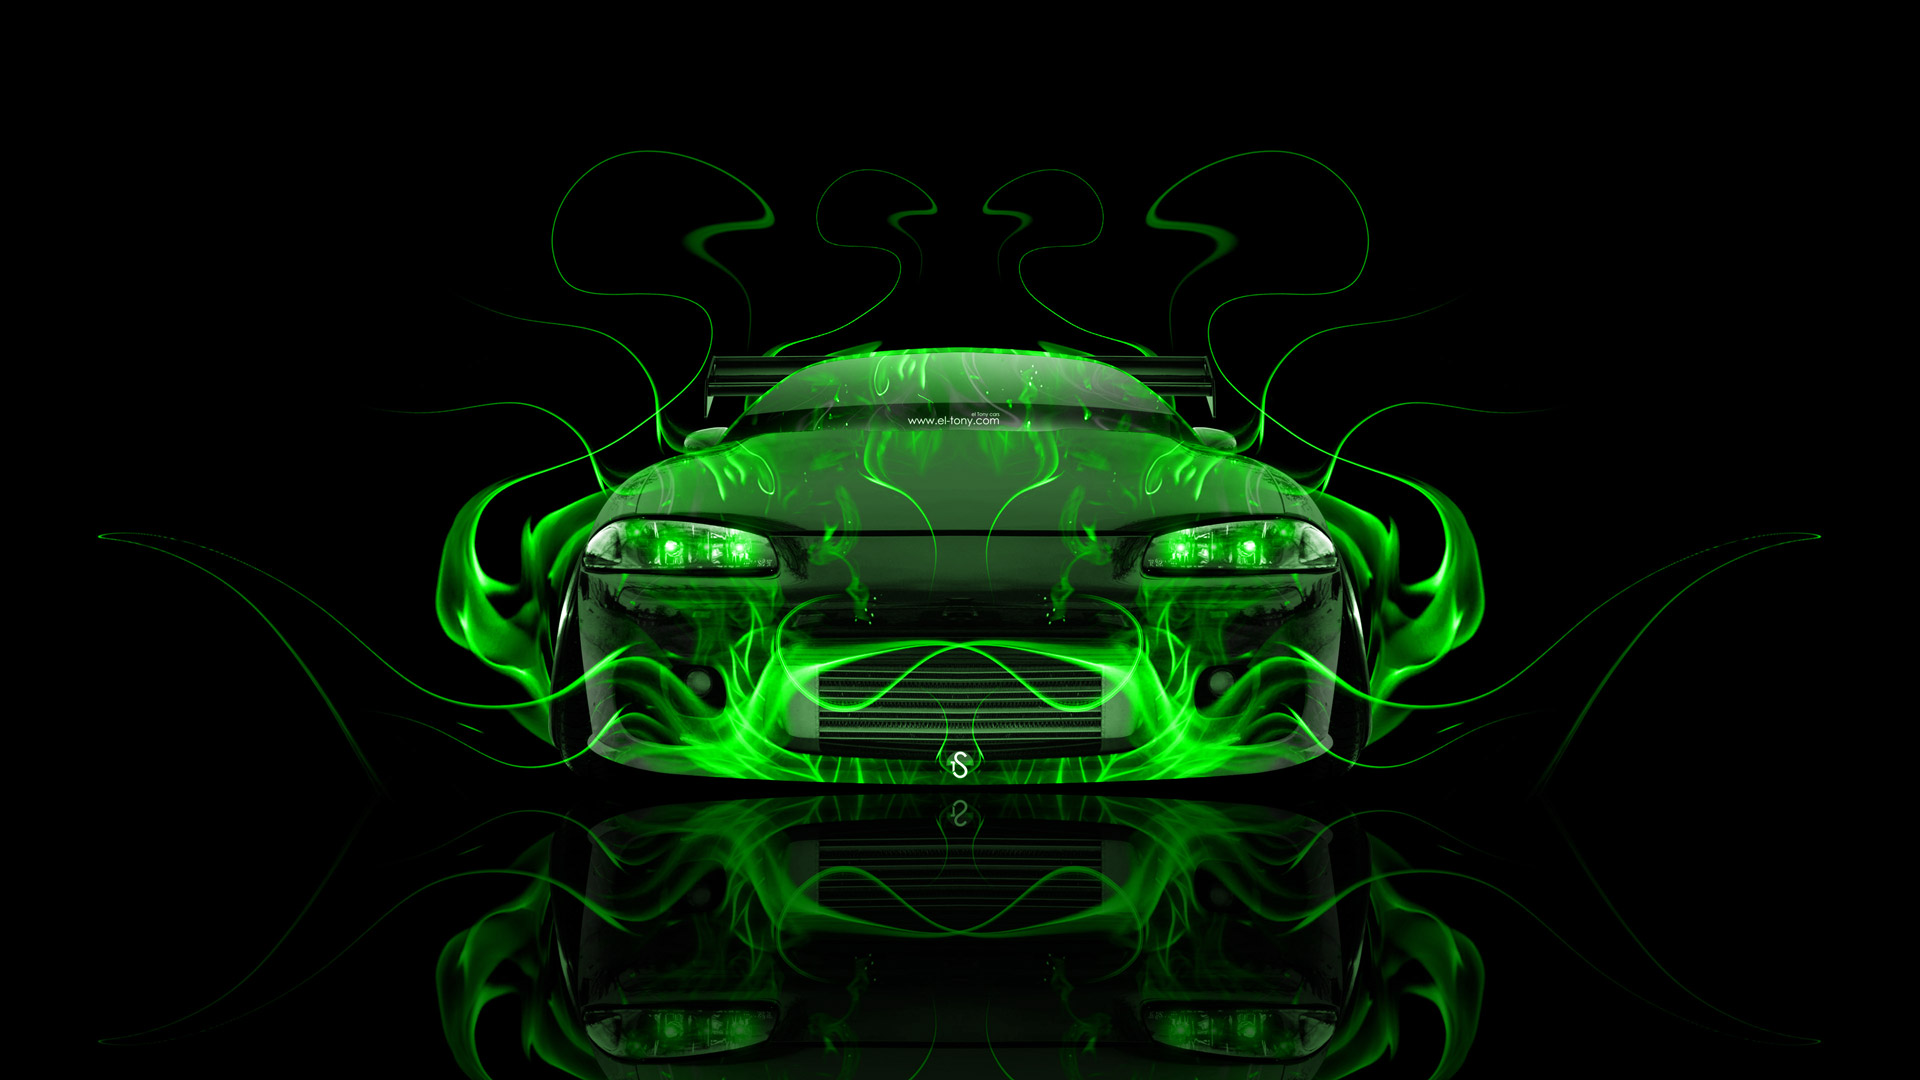 Delicieux Honda Civic Type R Back Fire Abstract Car. Superbe ... Mitsubishi  Eclipse JDM Tuning Front Green Fire Abstract .